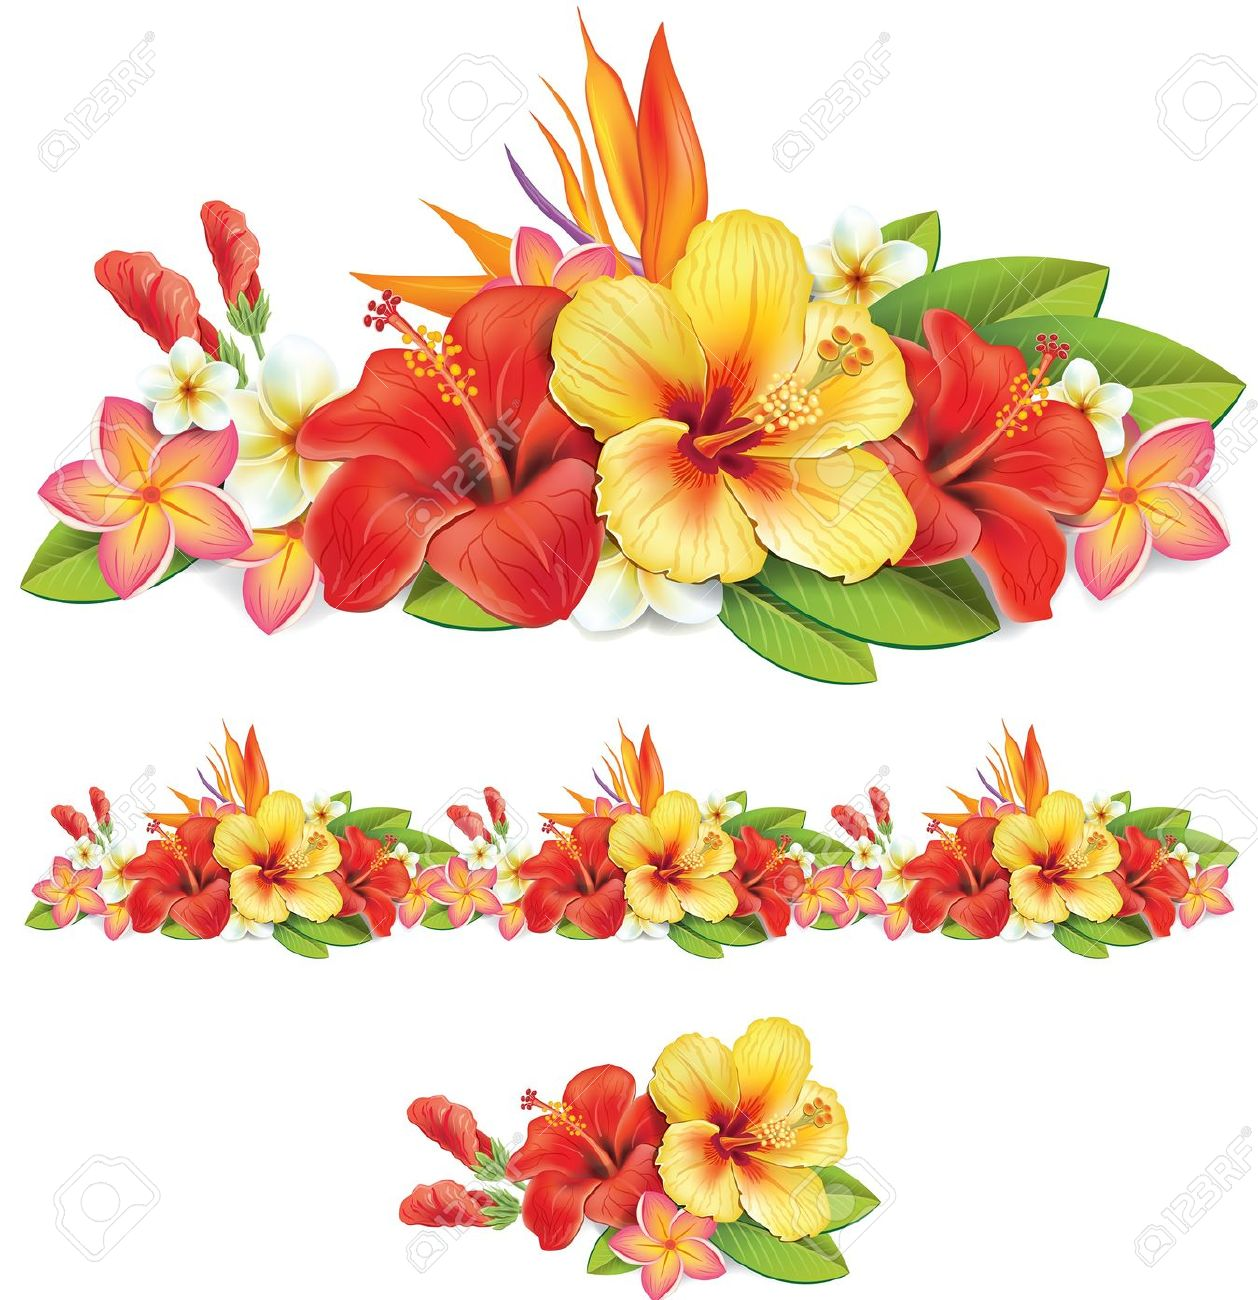 Plumeria clipart #5, Download drawings